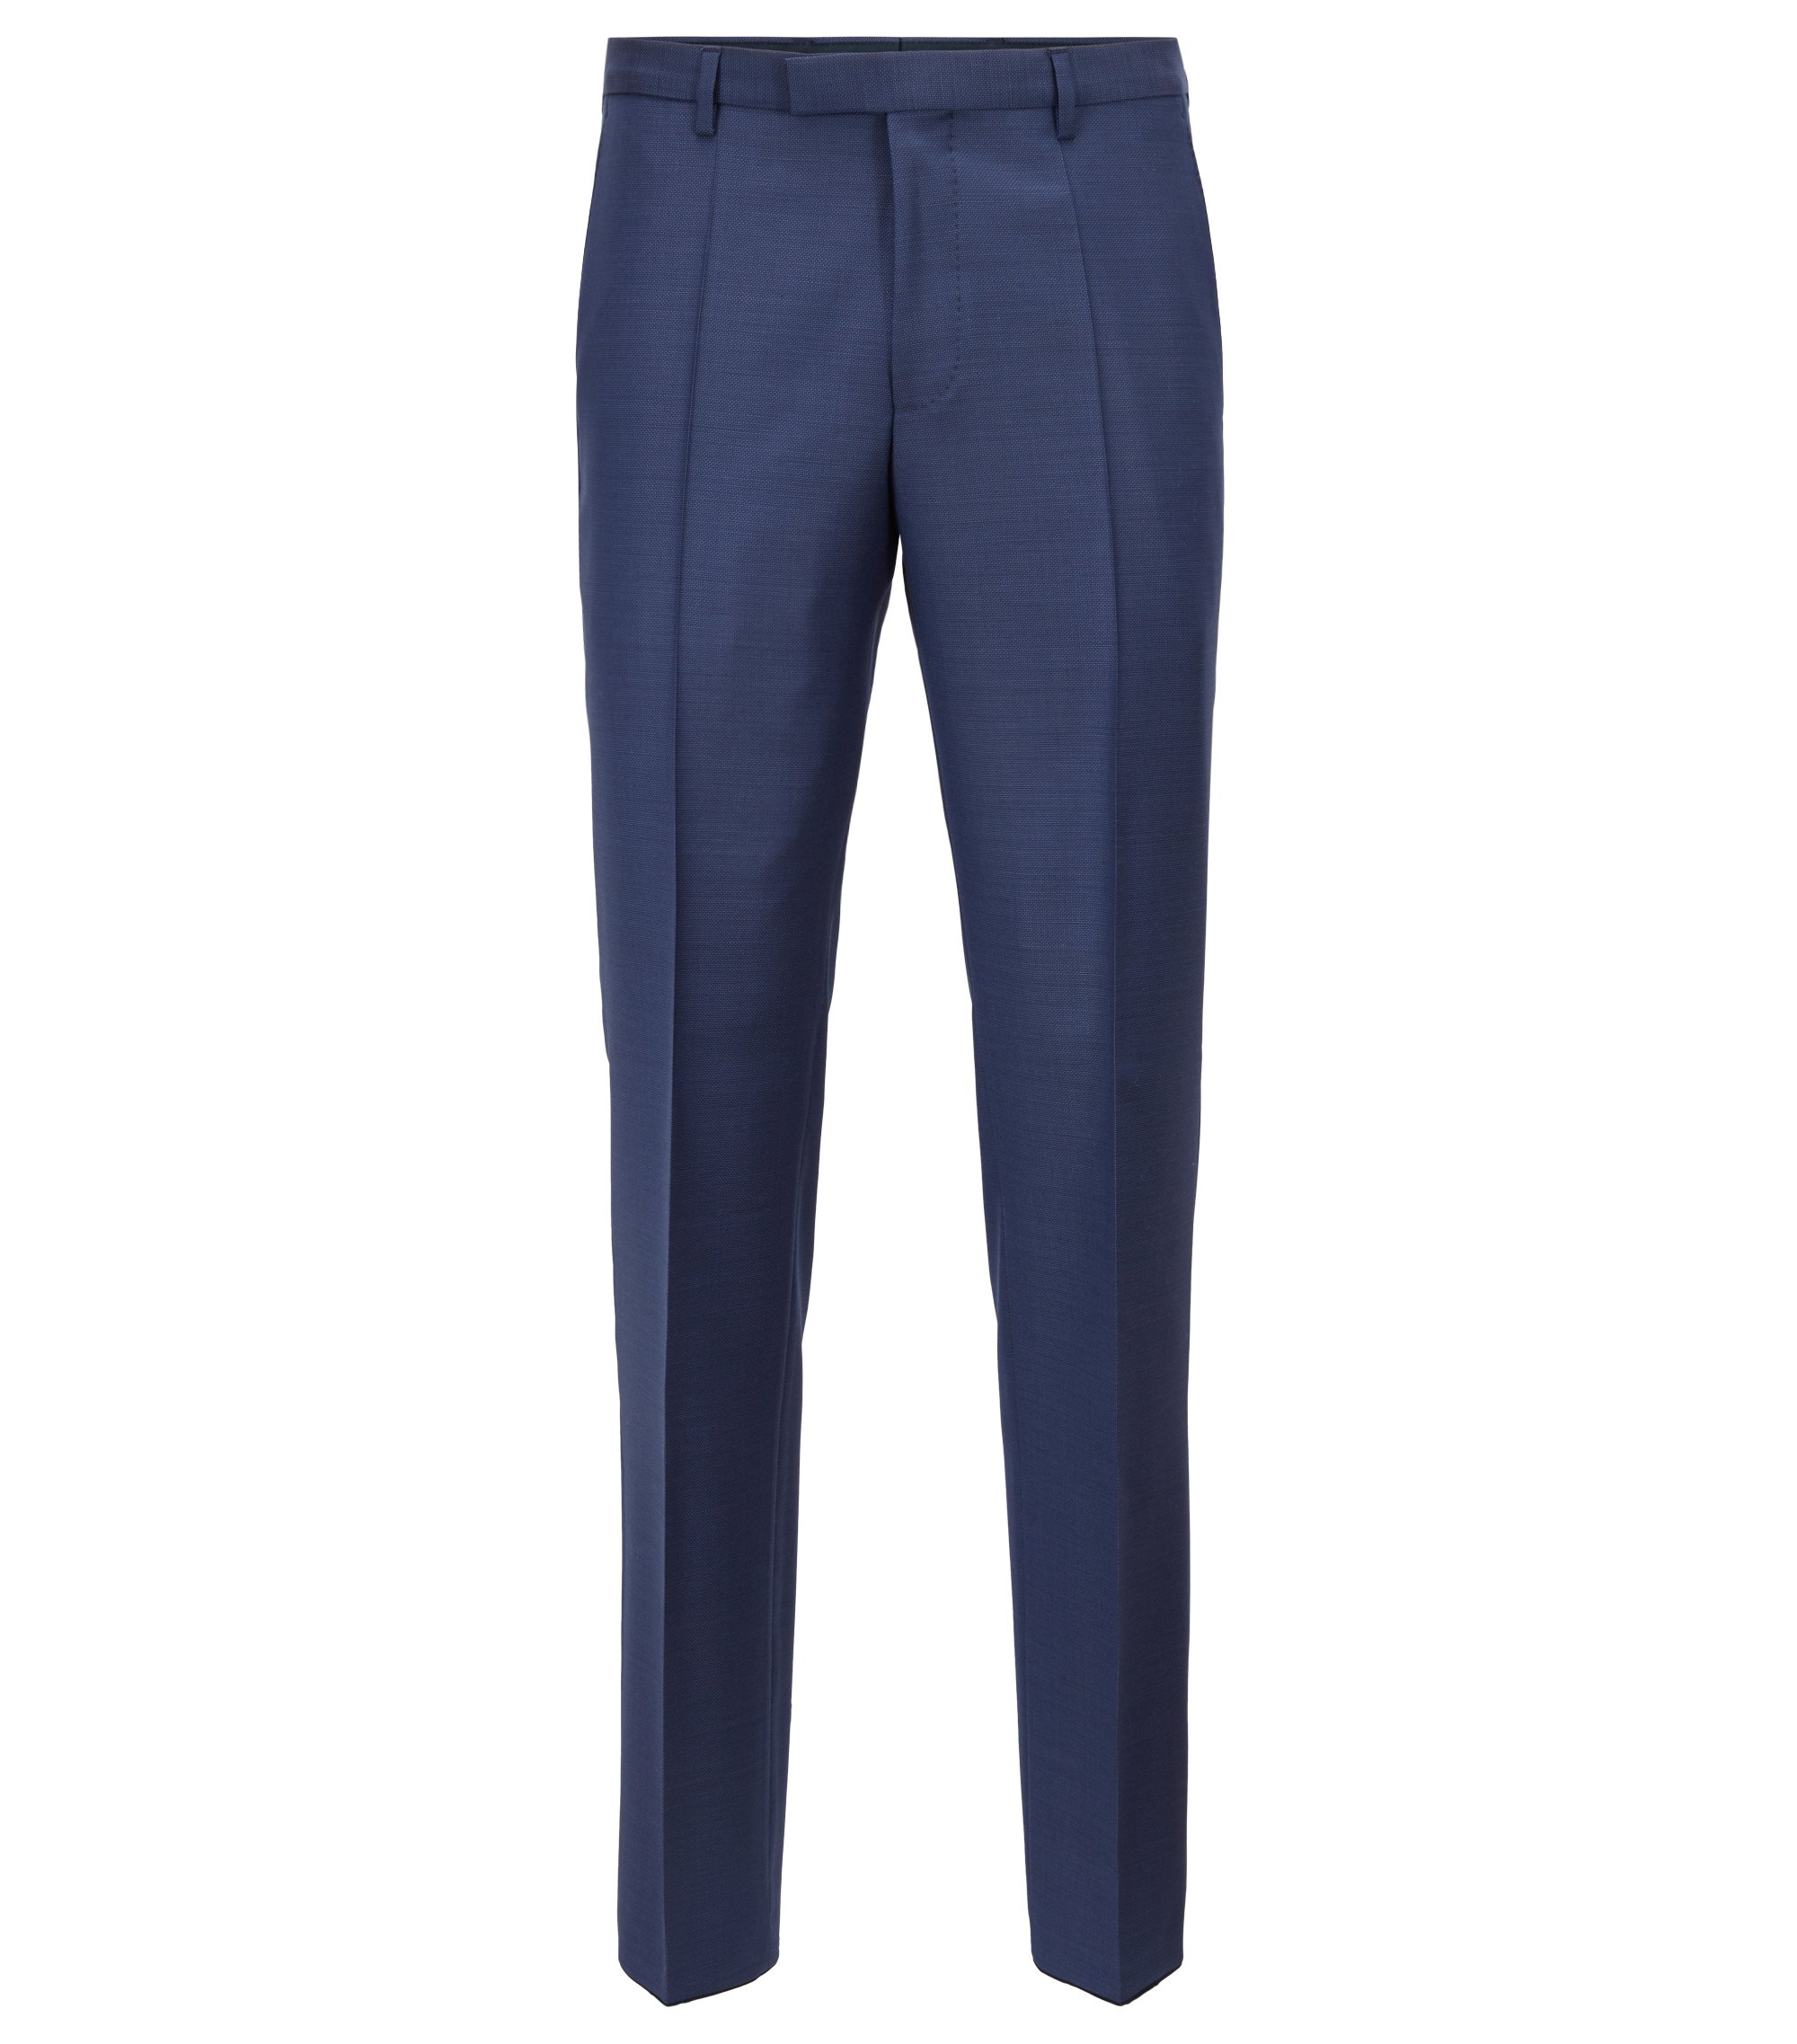 Pantalon Regular Fit en laine vierge unie, Bleu